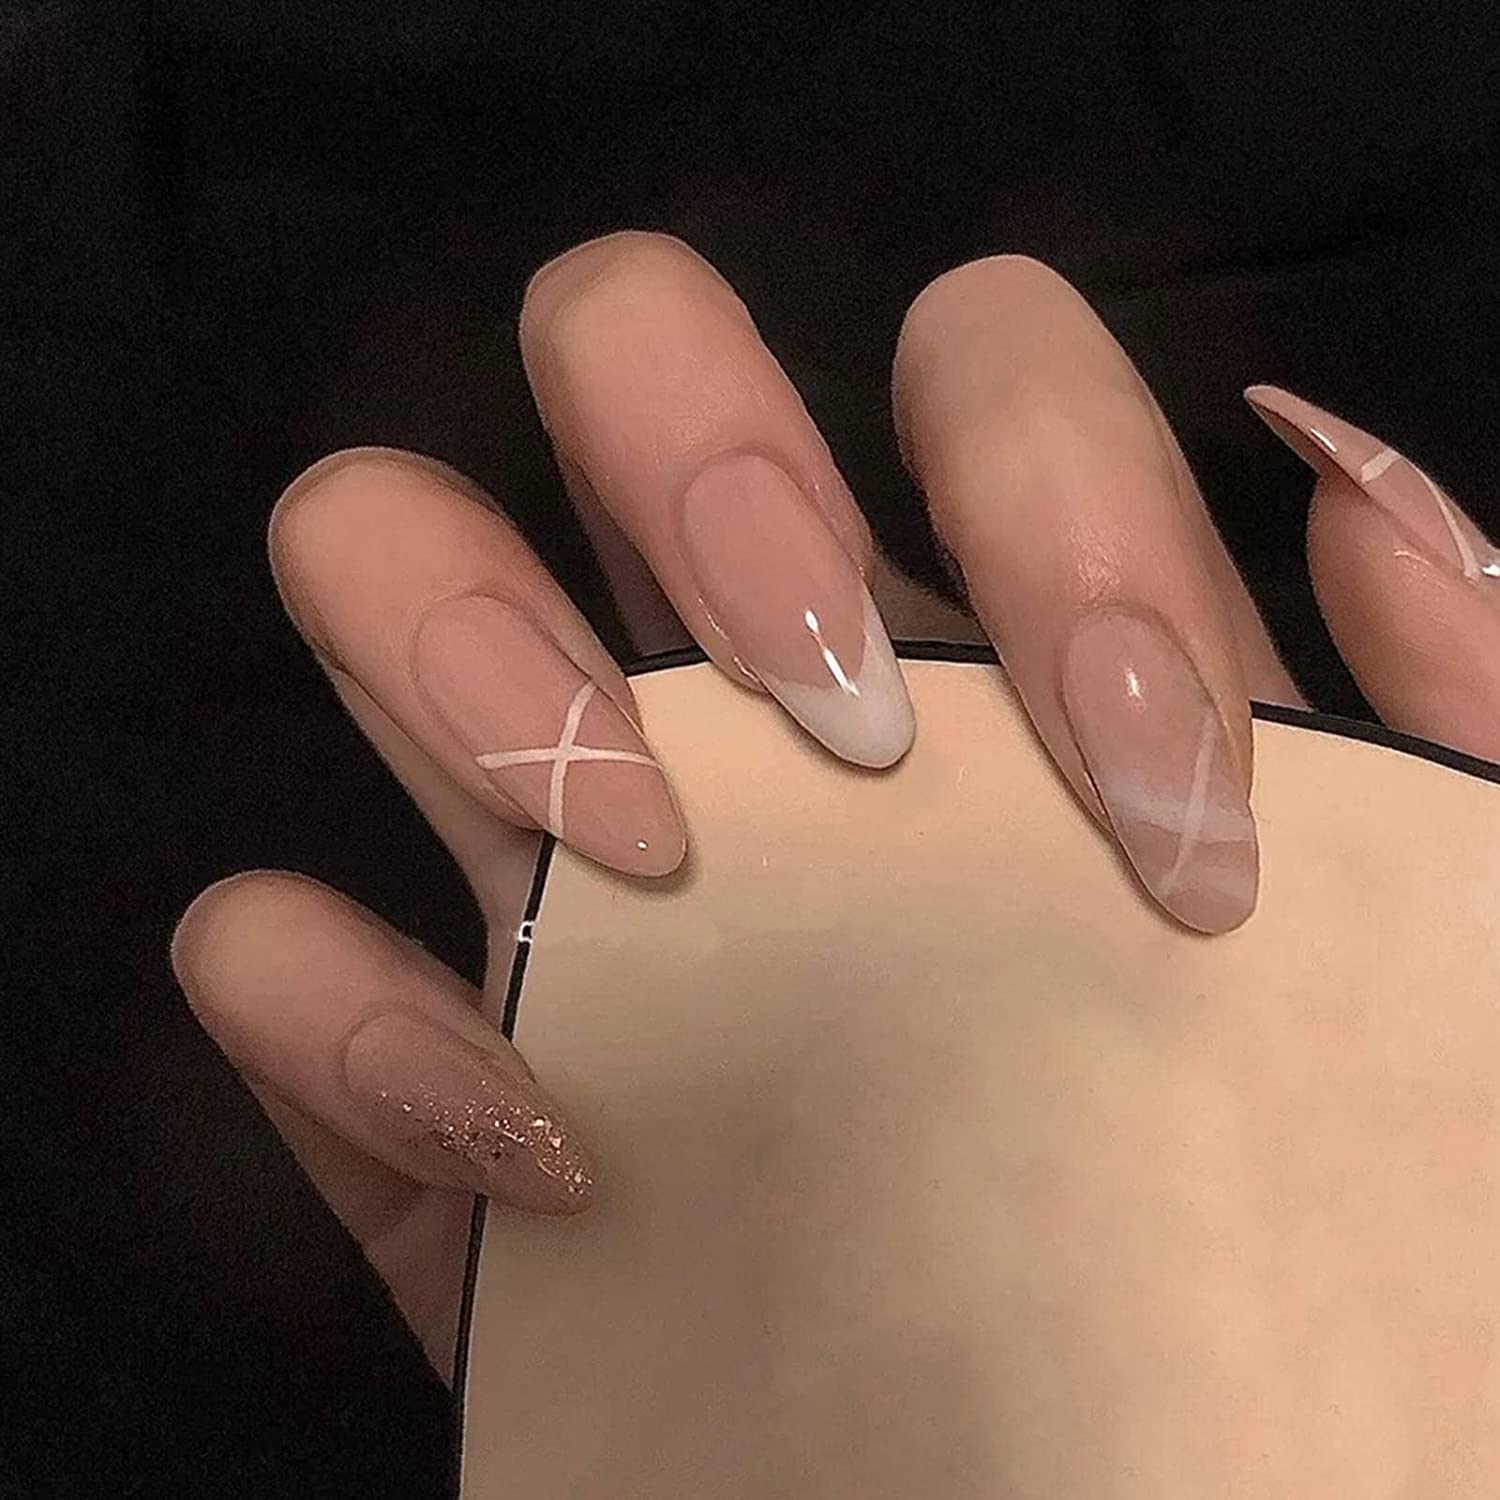 N\C 24pcs Detachable False Nails French He Free shipping anywhere in the nation Seasonal Wrap Introduction Gentle Glitter Almond